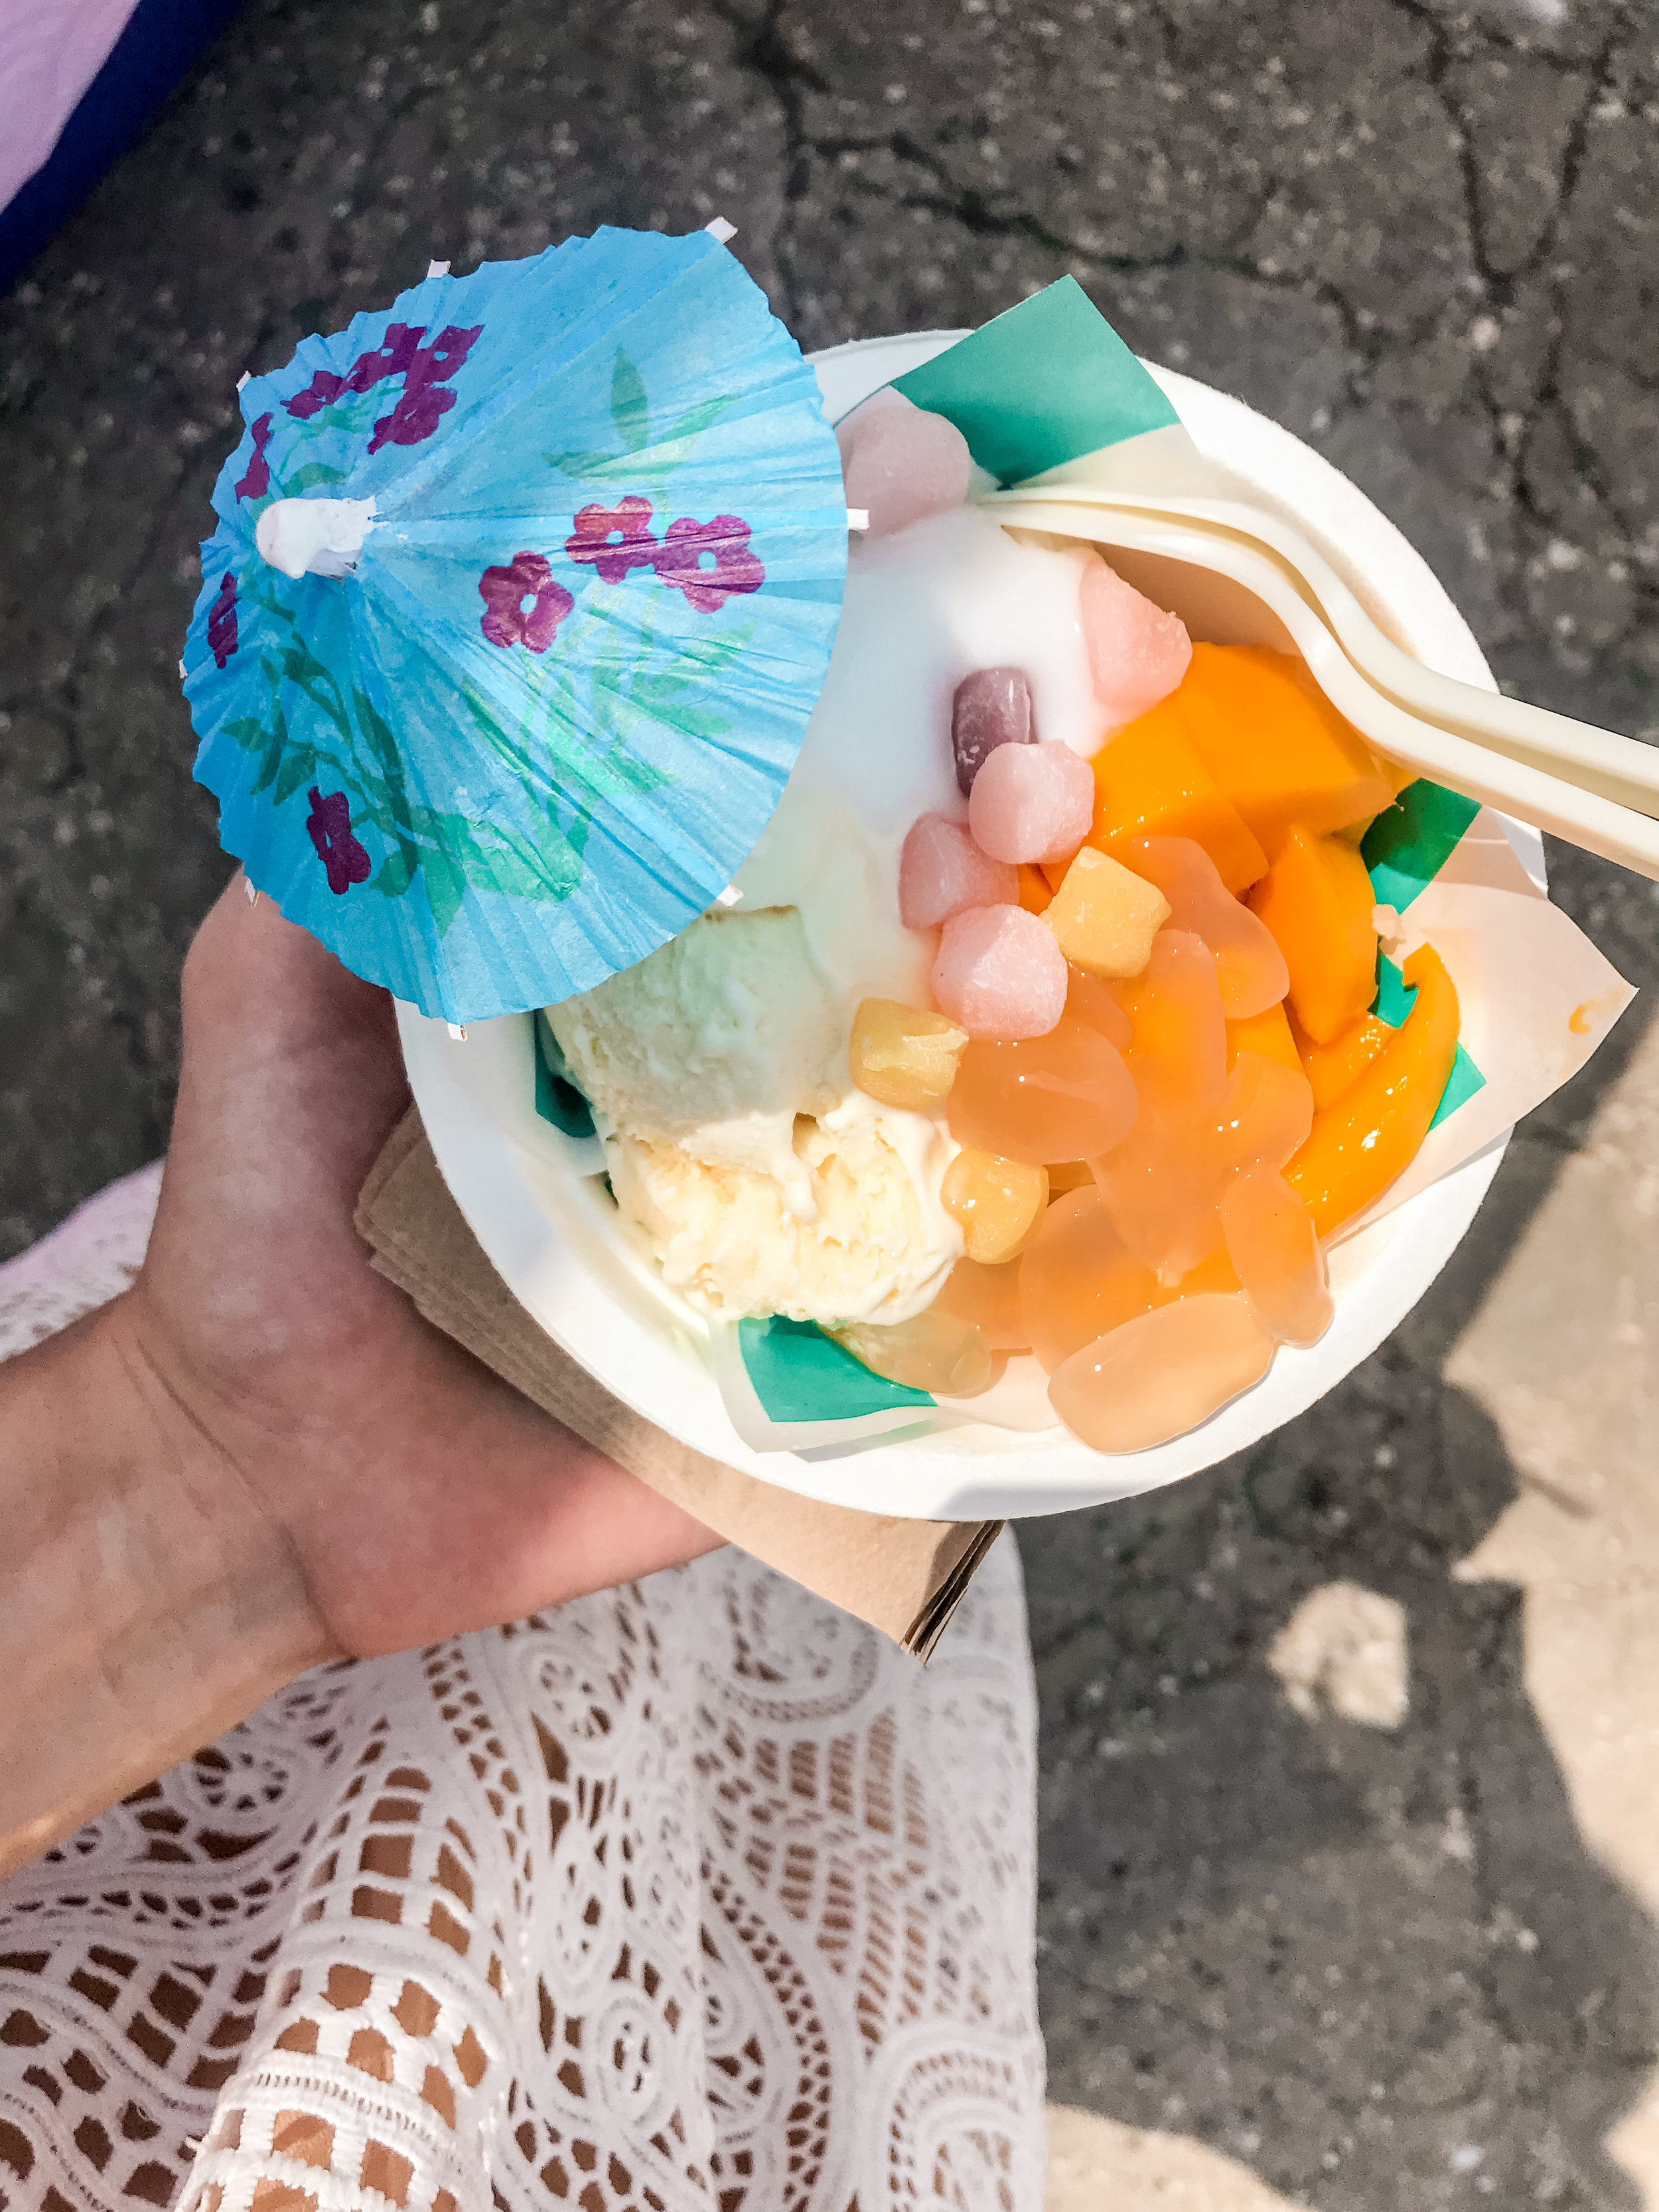 Thai Sticky Rice Ice Cream with mochi, lychee, mango and coconut cream at Smorgasburg